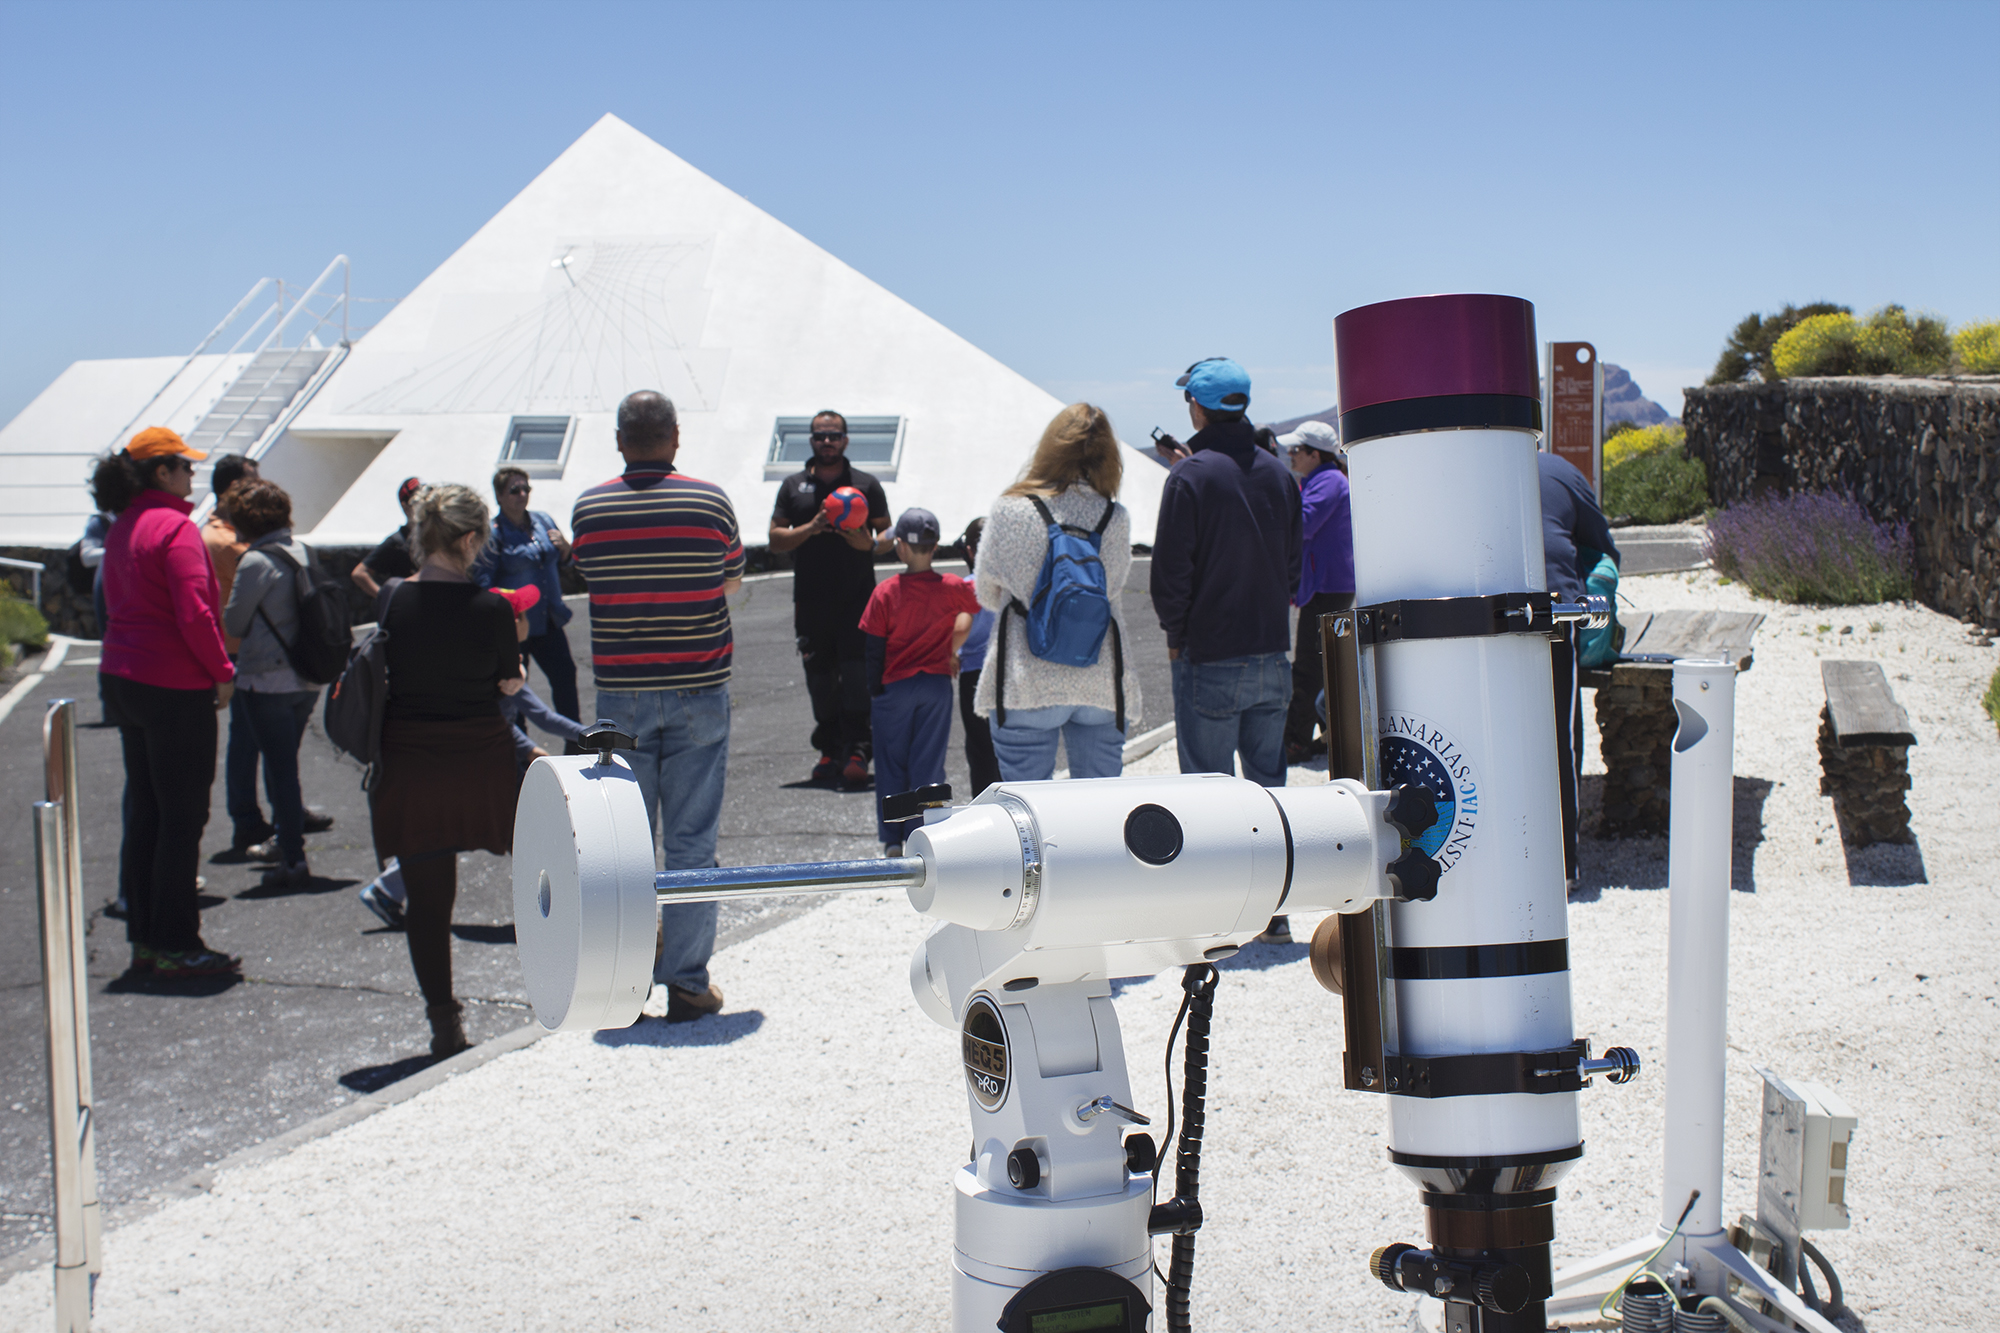 Visiting the Teide Observatory with children